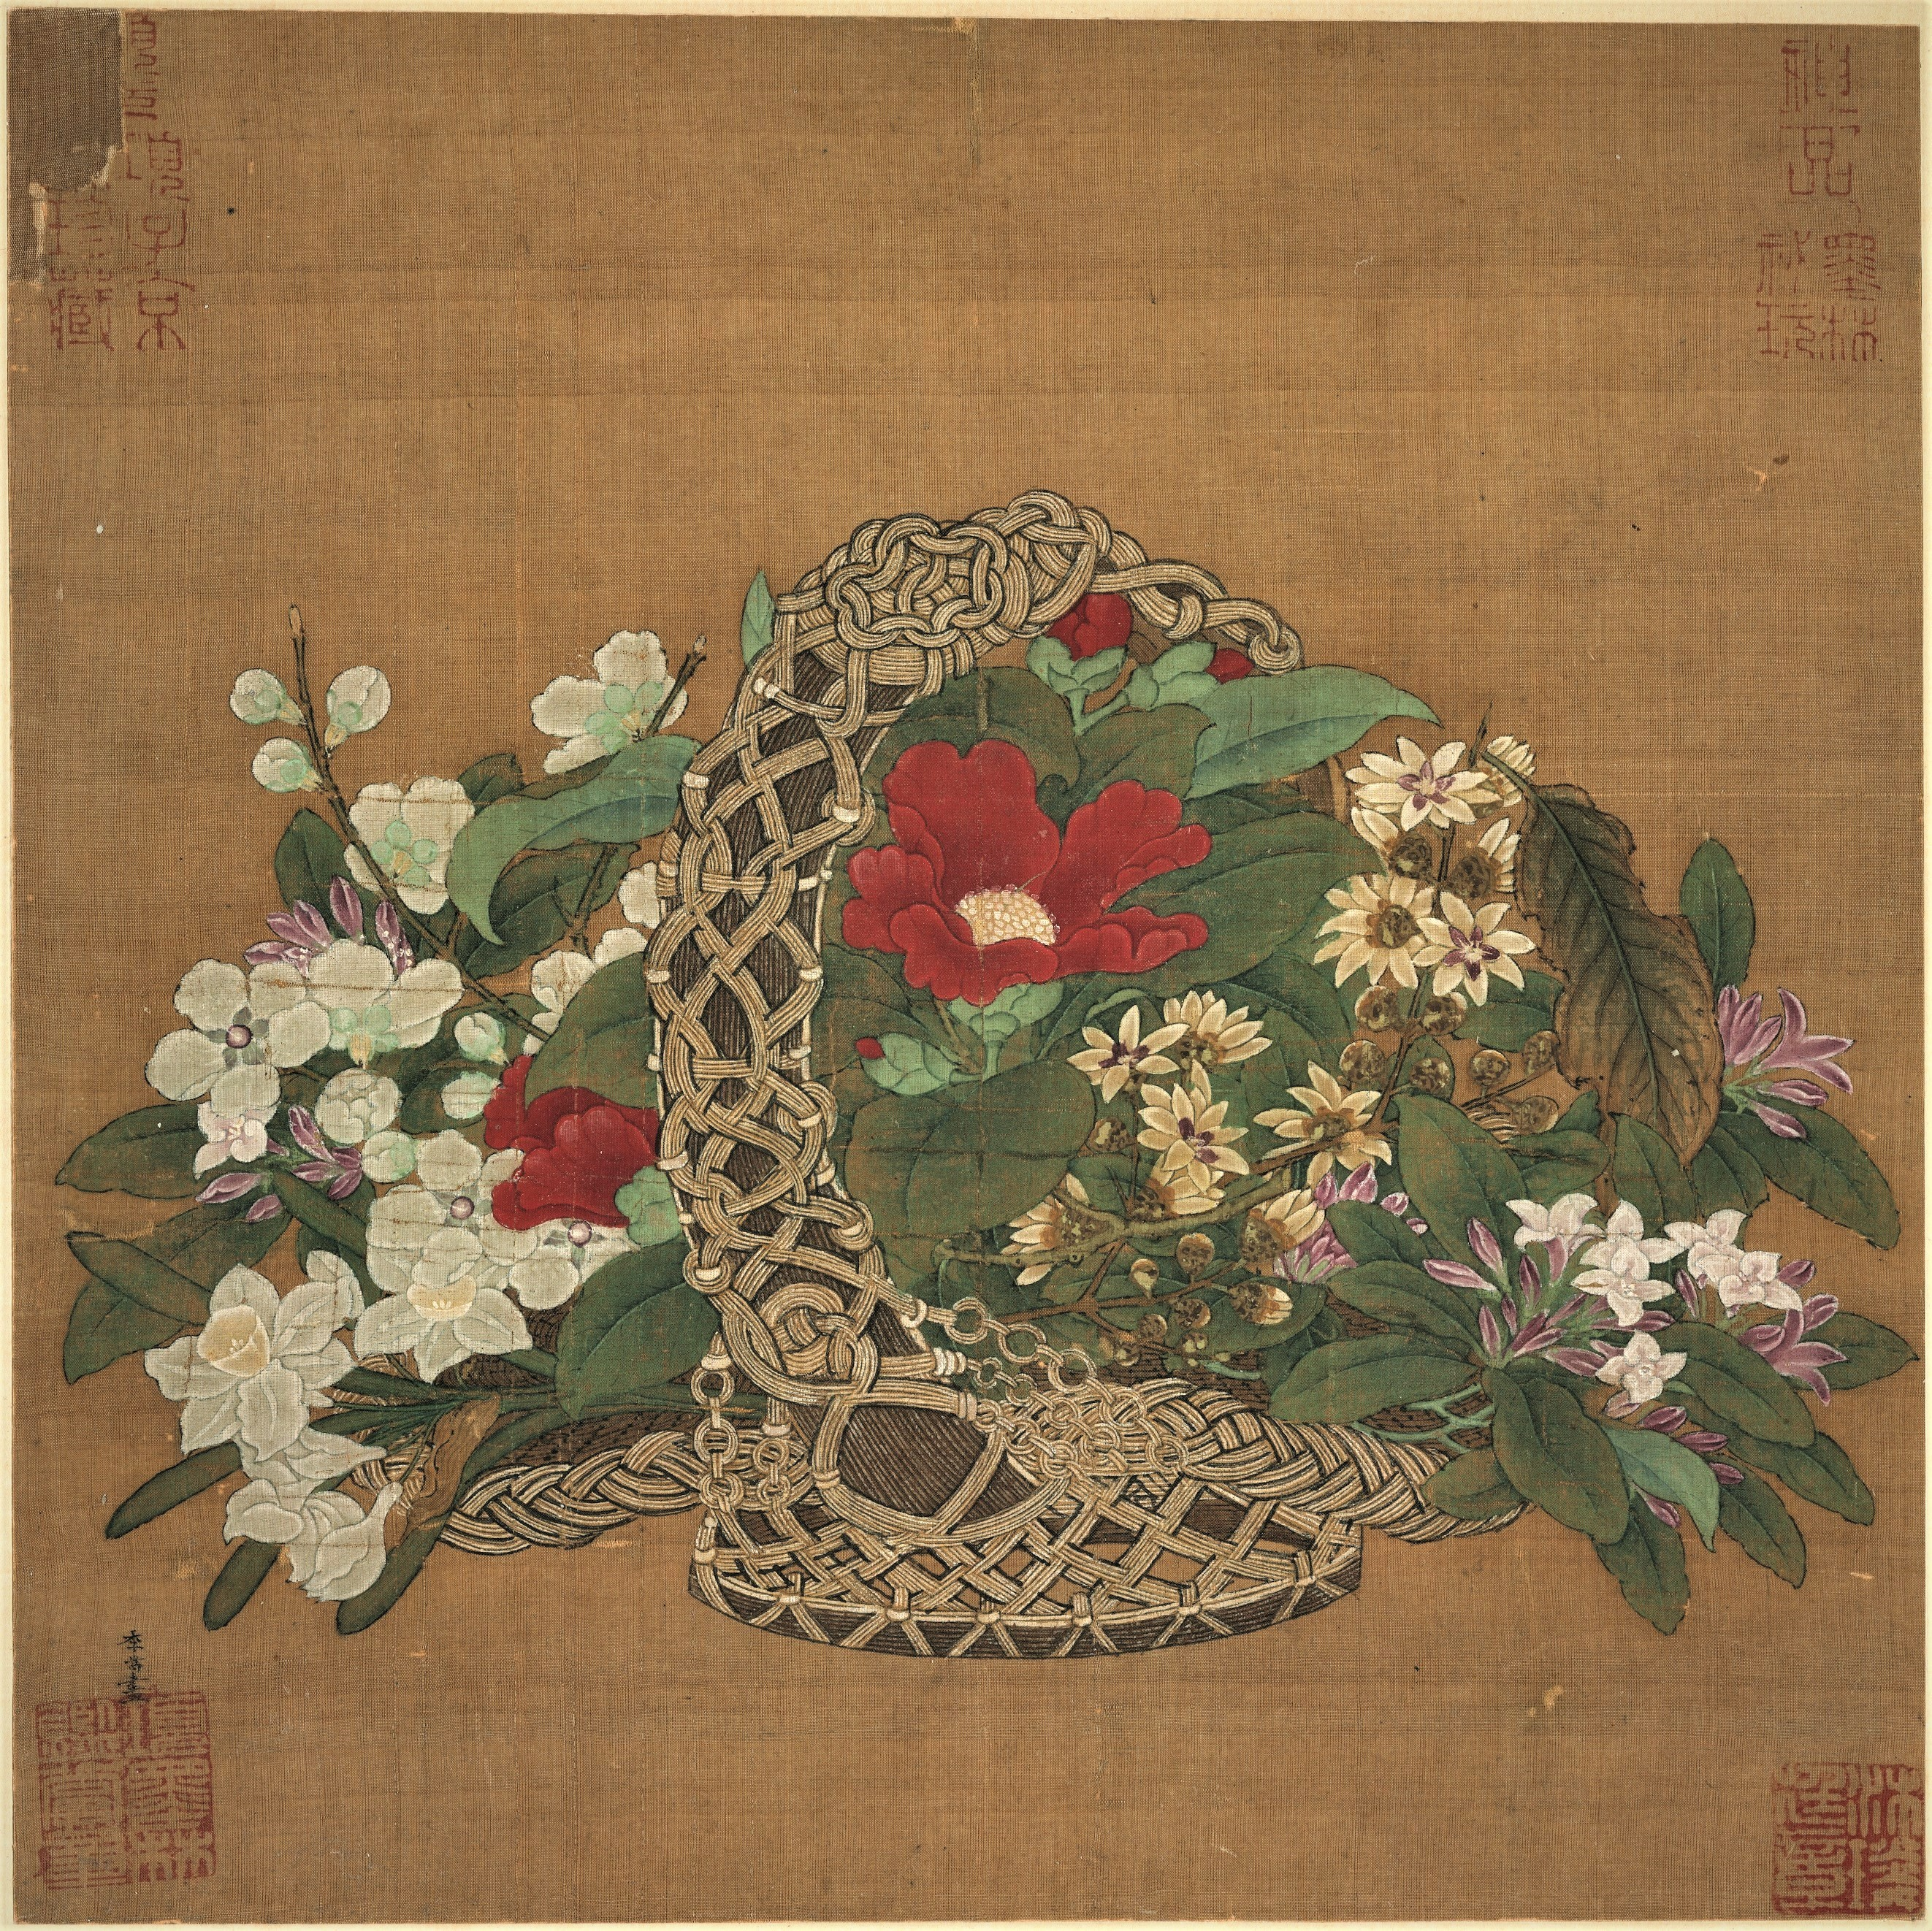 File:Li Song, Basket of Flowers.jpg